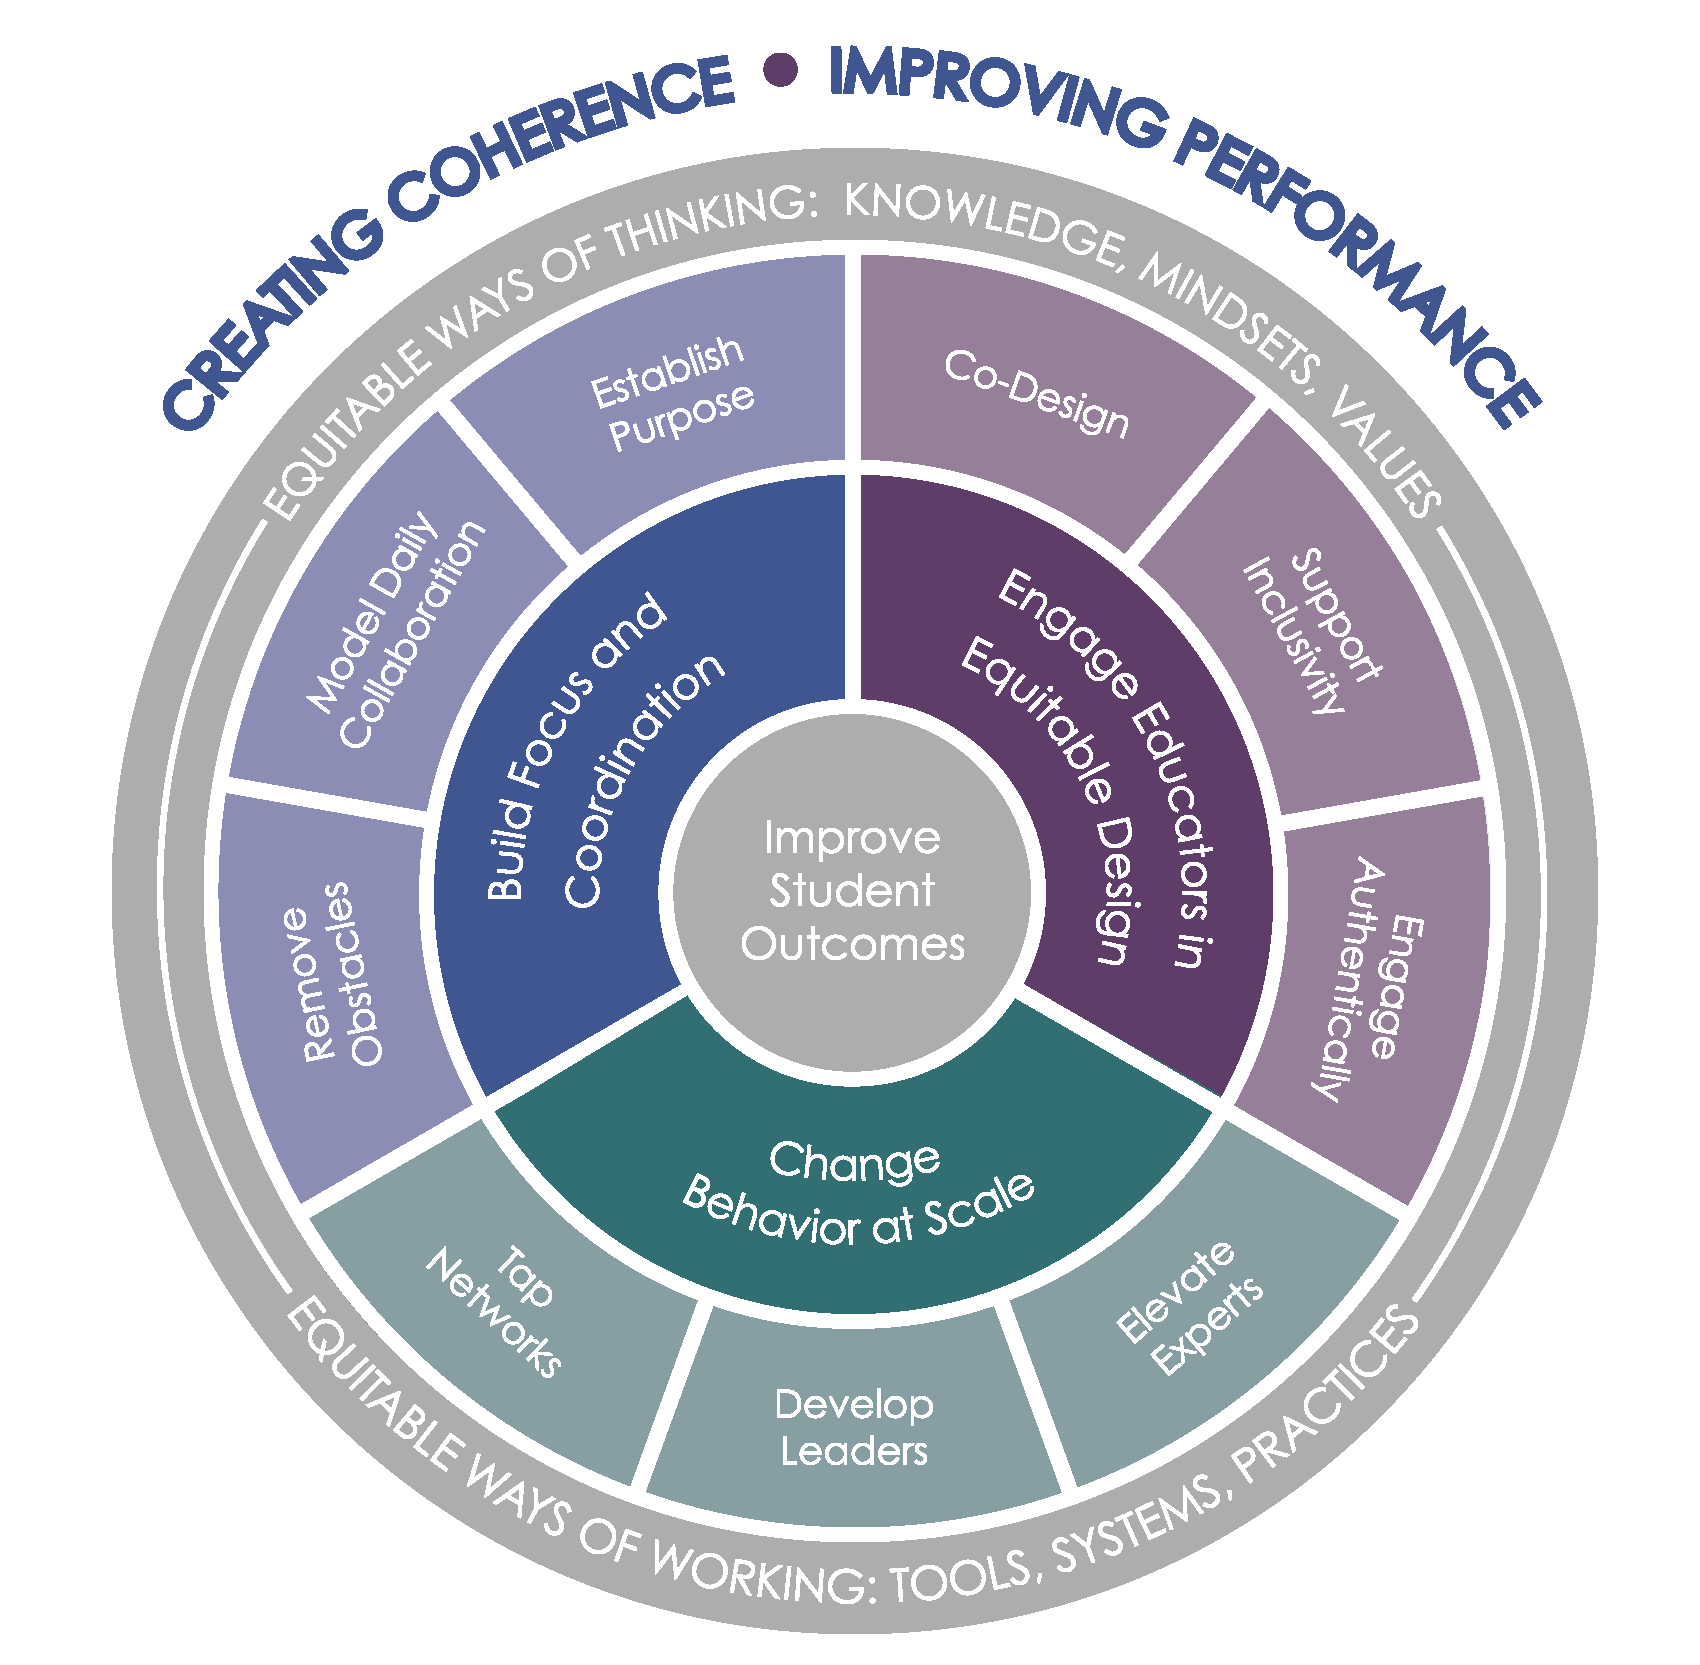 This graphic displays the Fellowship's curricular themes and coherence elements of focus.